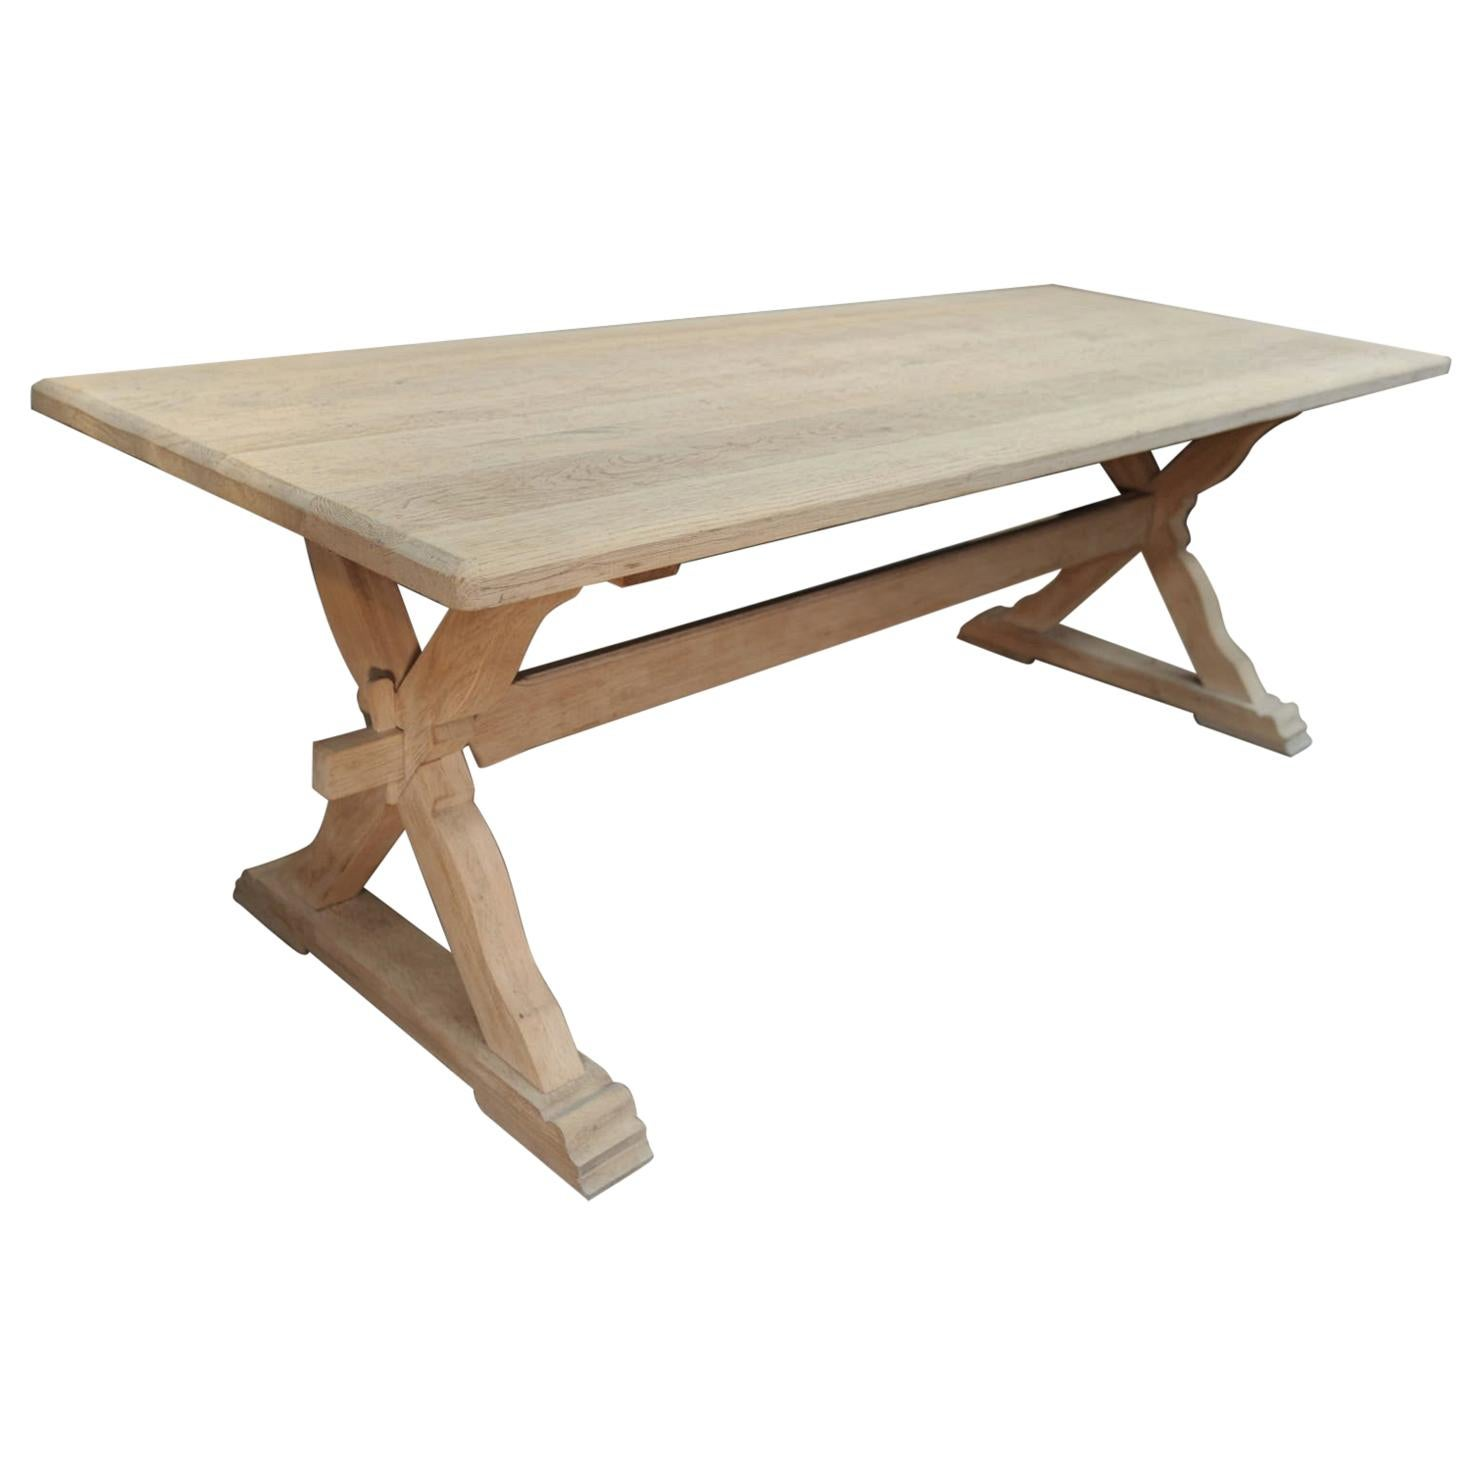 Solid Oak Dining Table, circa 1950